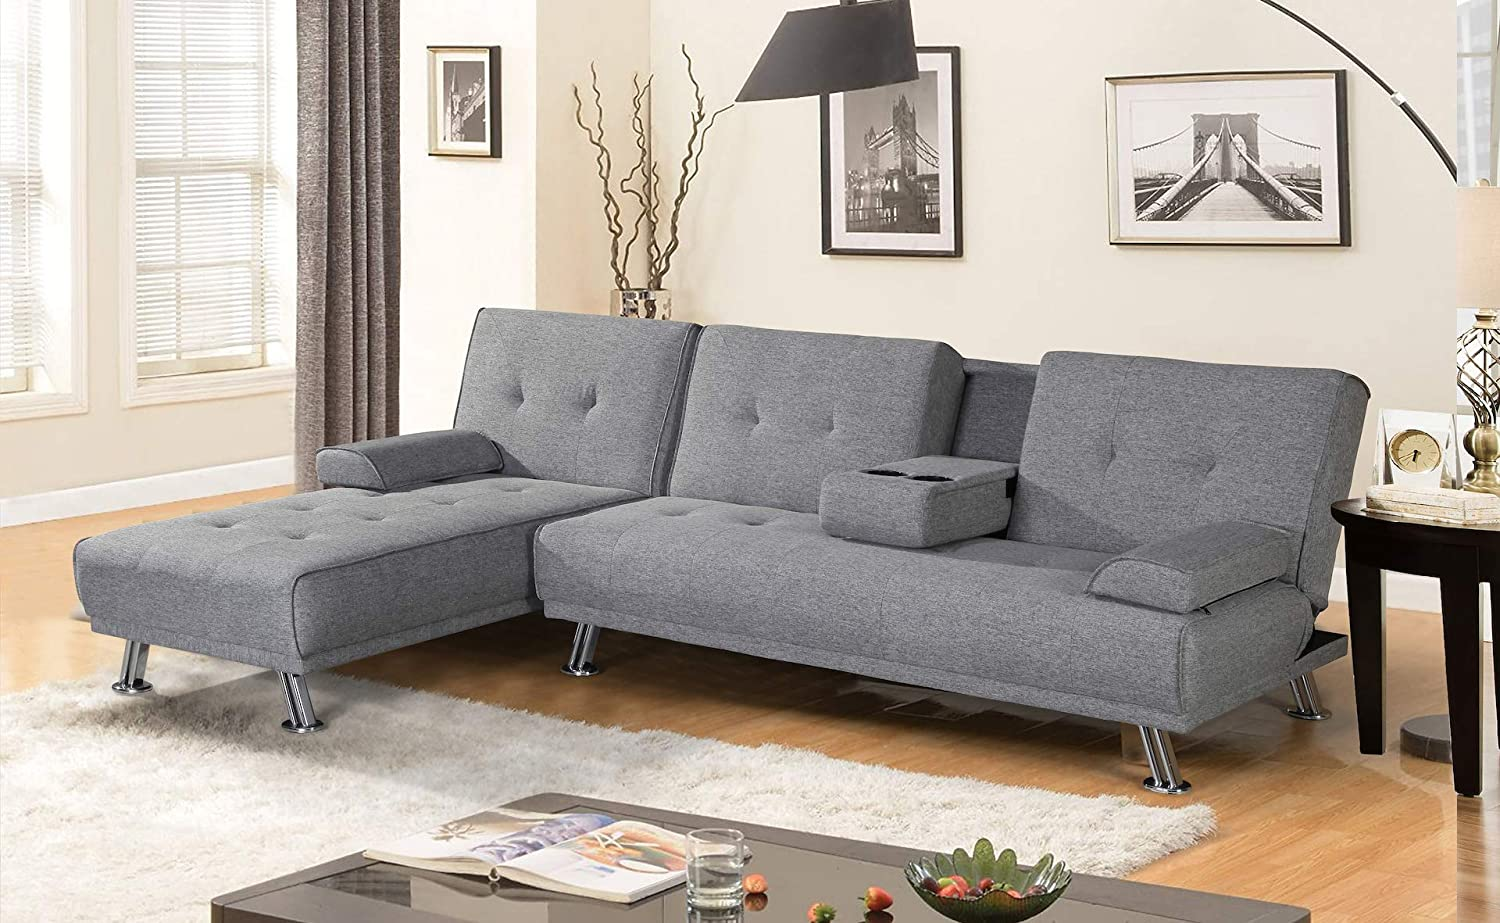 Amazoncom Broyerk Mixed Grey Sectional Sofa Bed Kitchen Dining